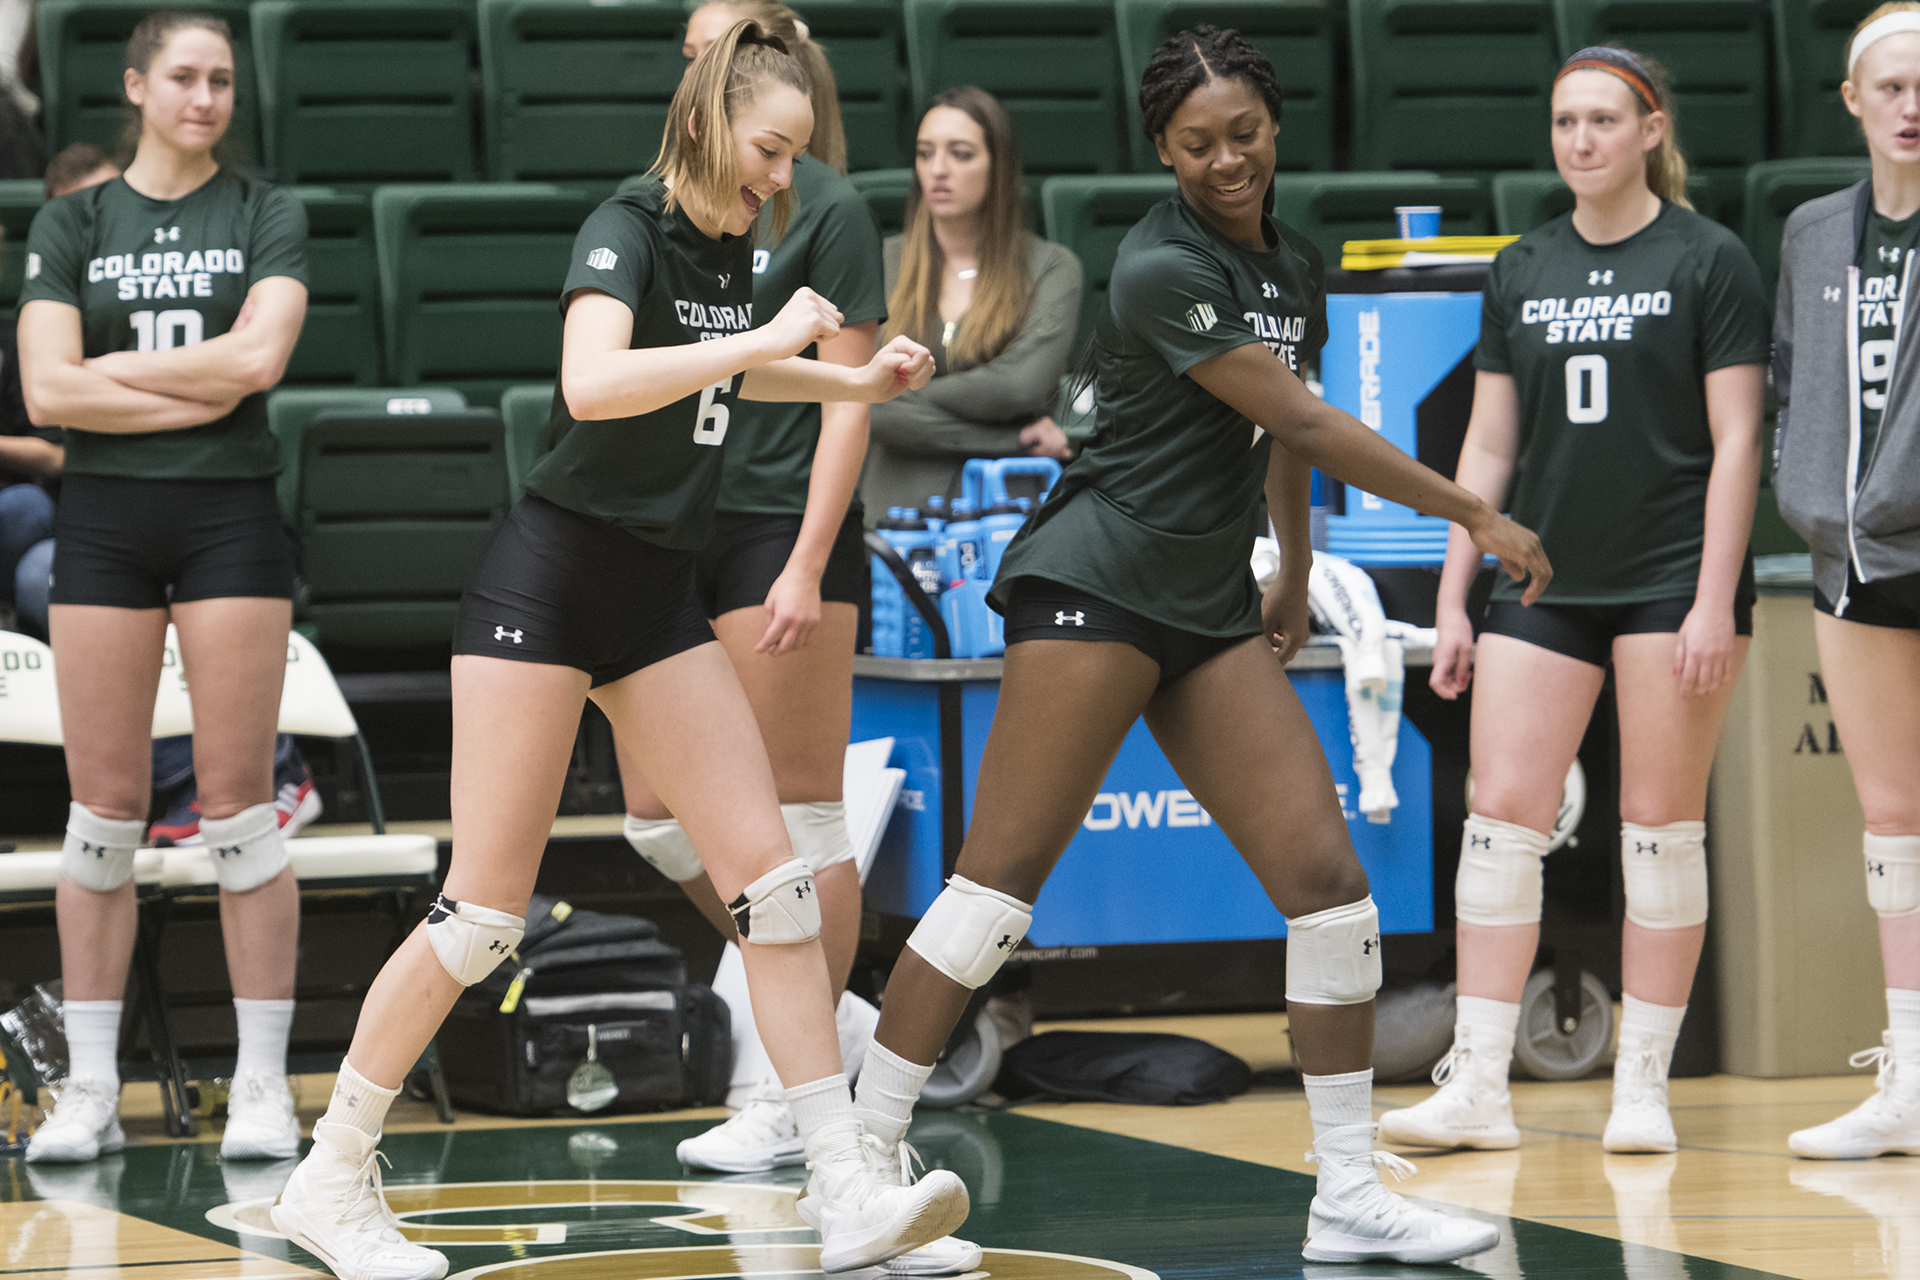 Freshmen Alana Giles and Madison Boles dance from the sideline while waiting for the first set to start.